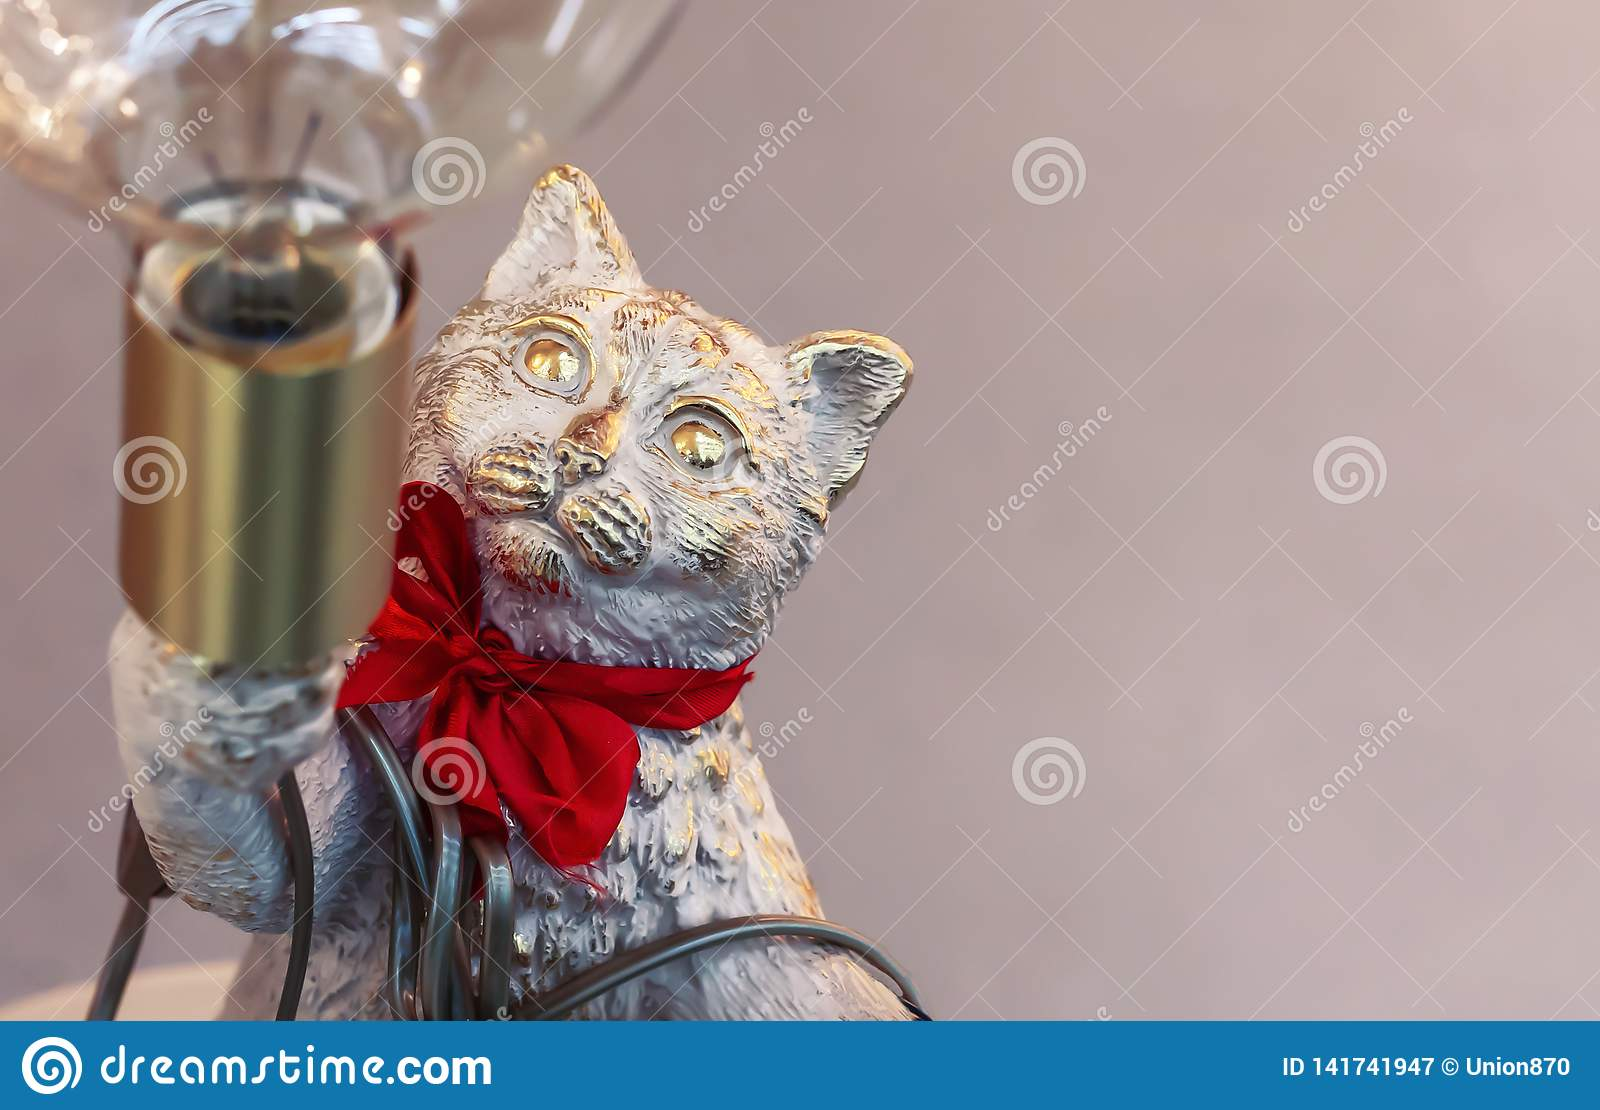 Bronze statuette of a cat with a lamp